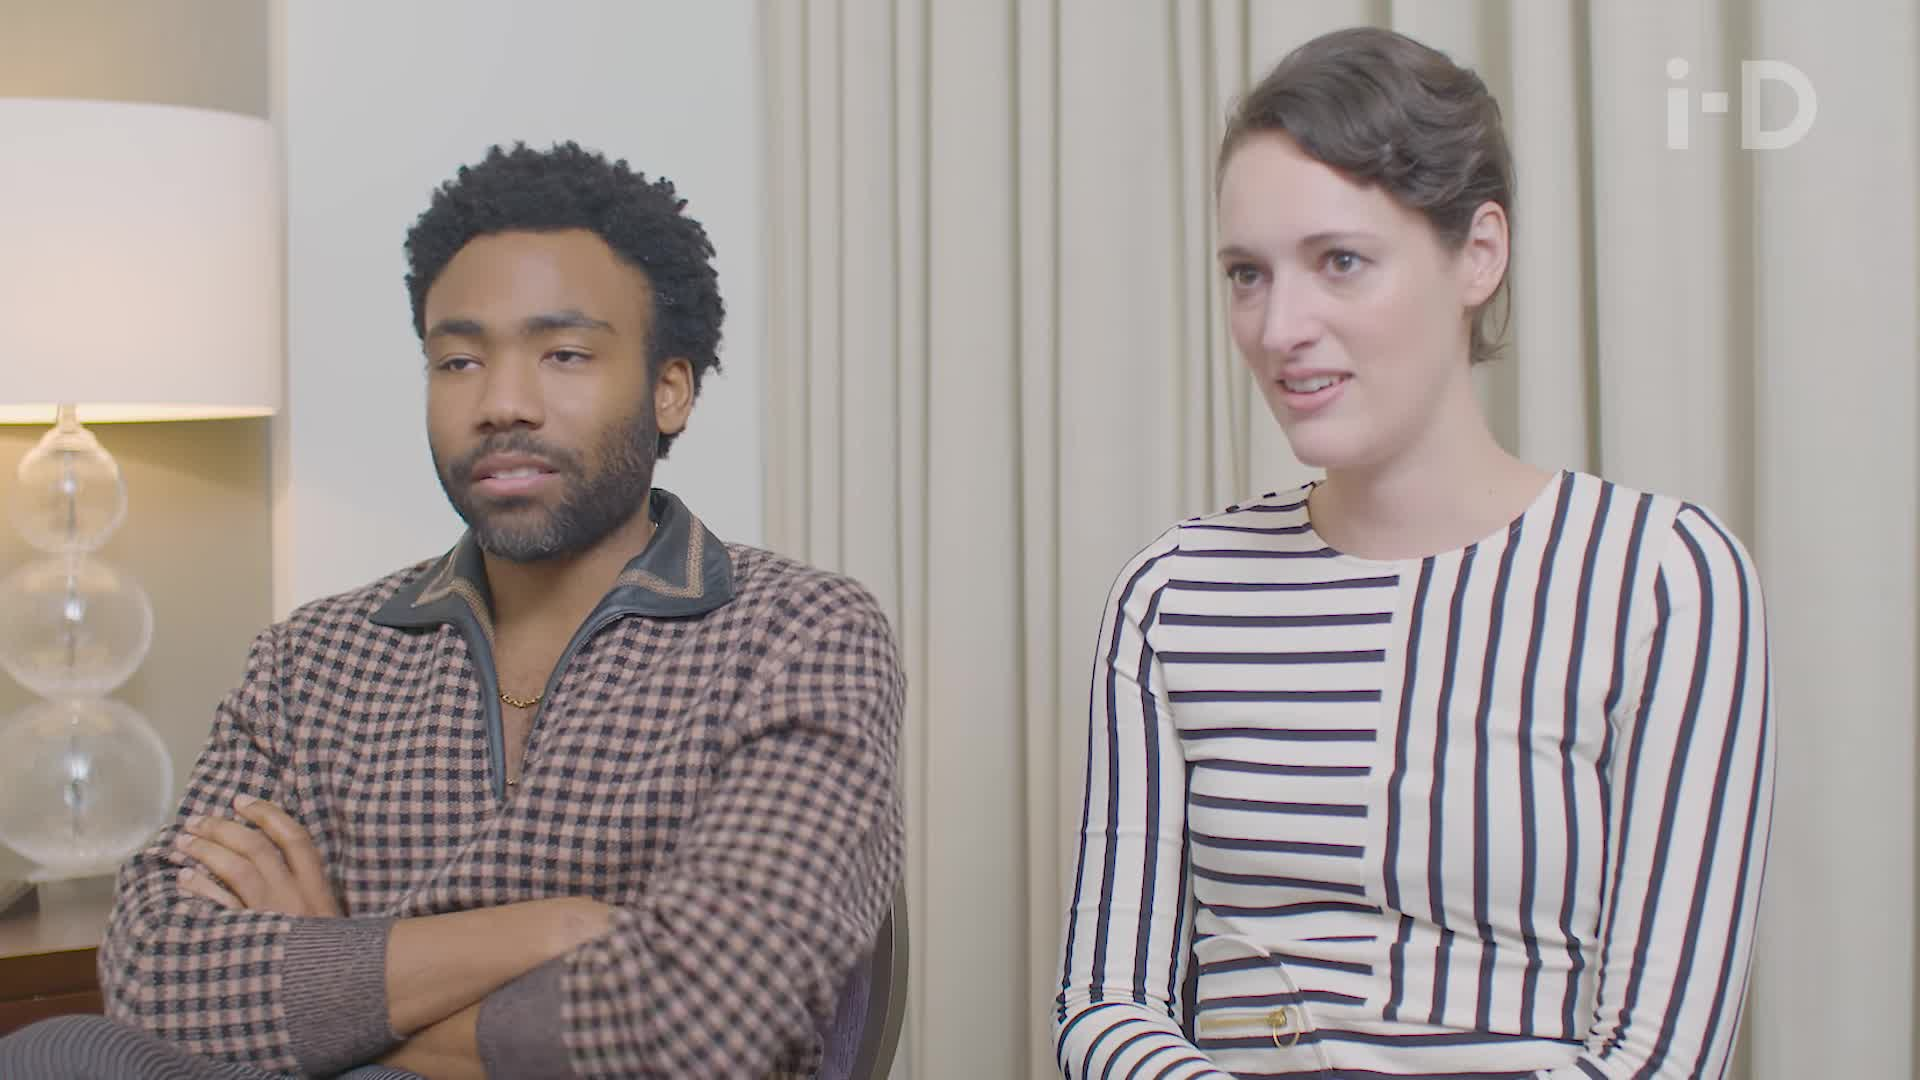 donald glover, i-D, phoebe waller-bridge, reaction gif, shocked, Donald Glover on Playing 'This Is America' on the Millennium Falcon GIFs